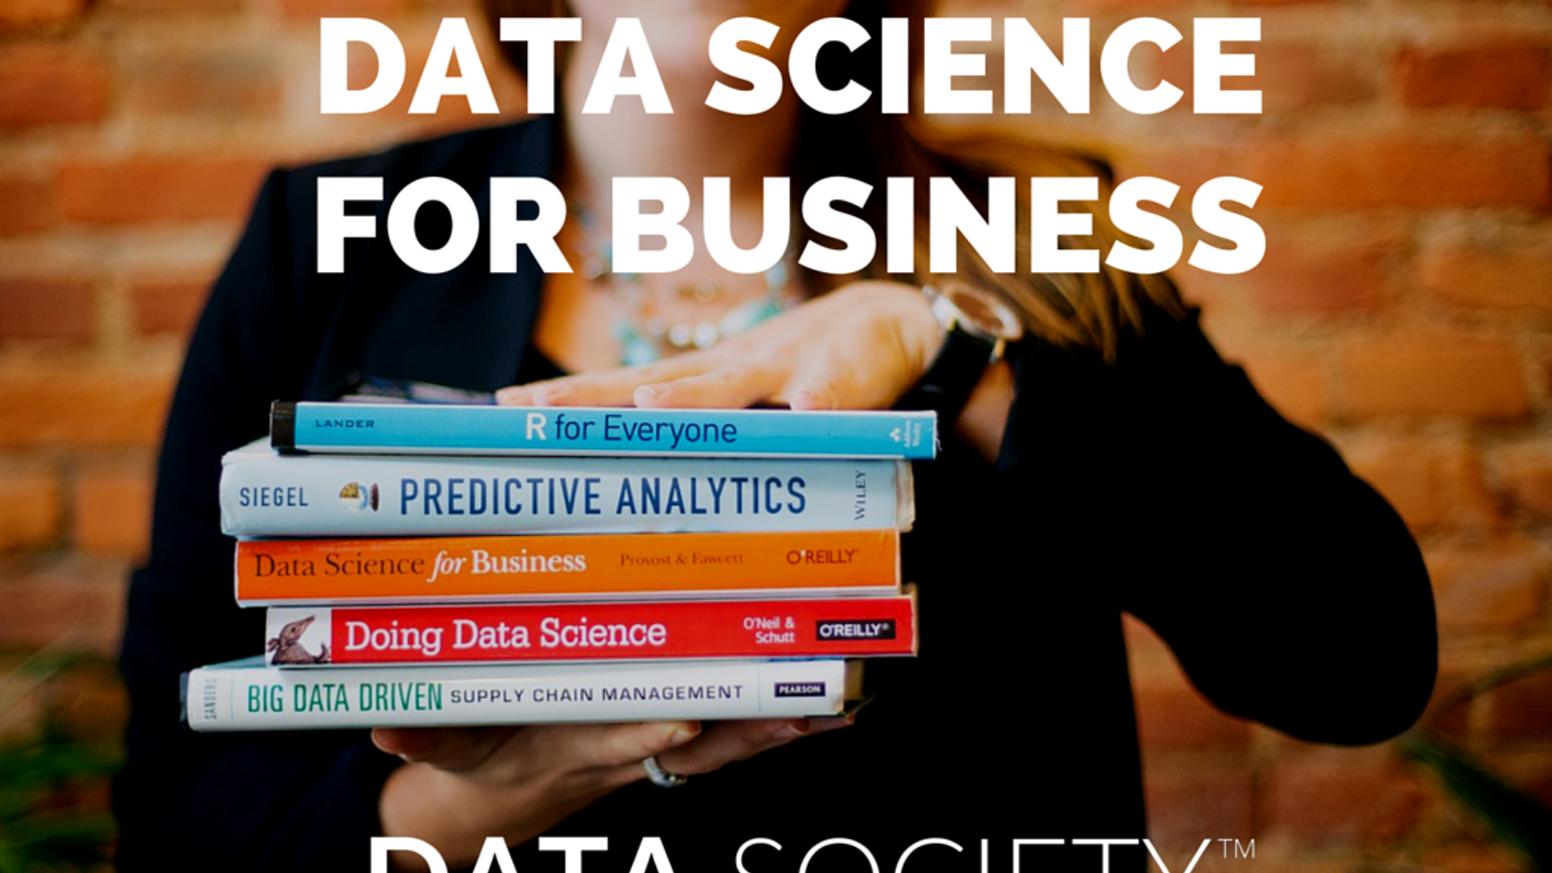 Learn data analysis in a practical, intuitive, and fun way to get the skills you need to make an impact.